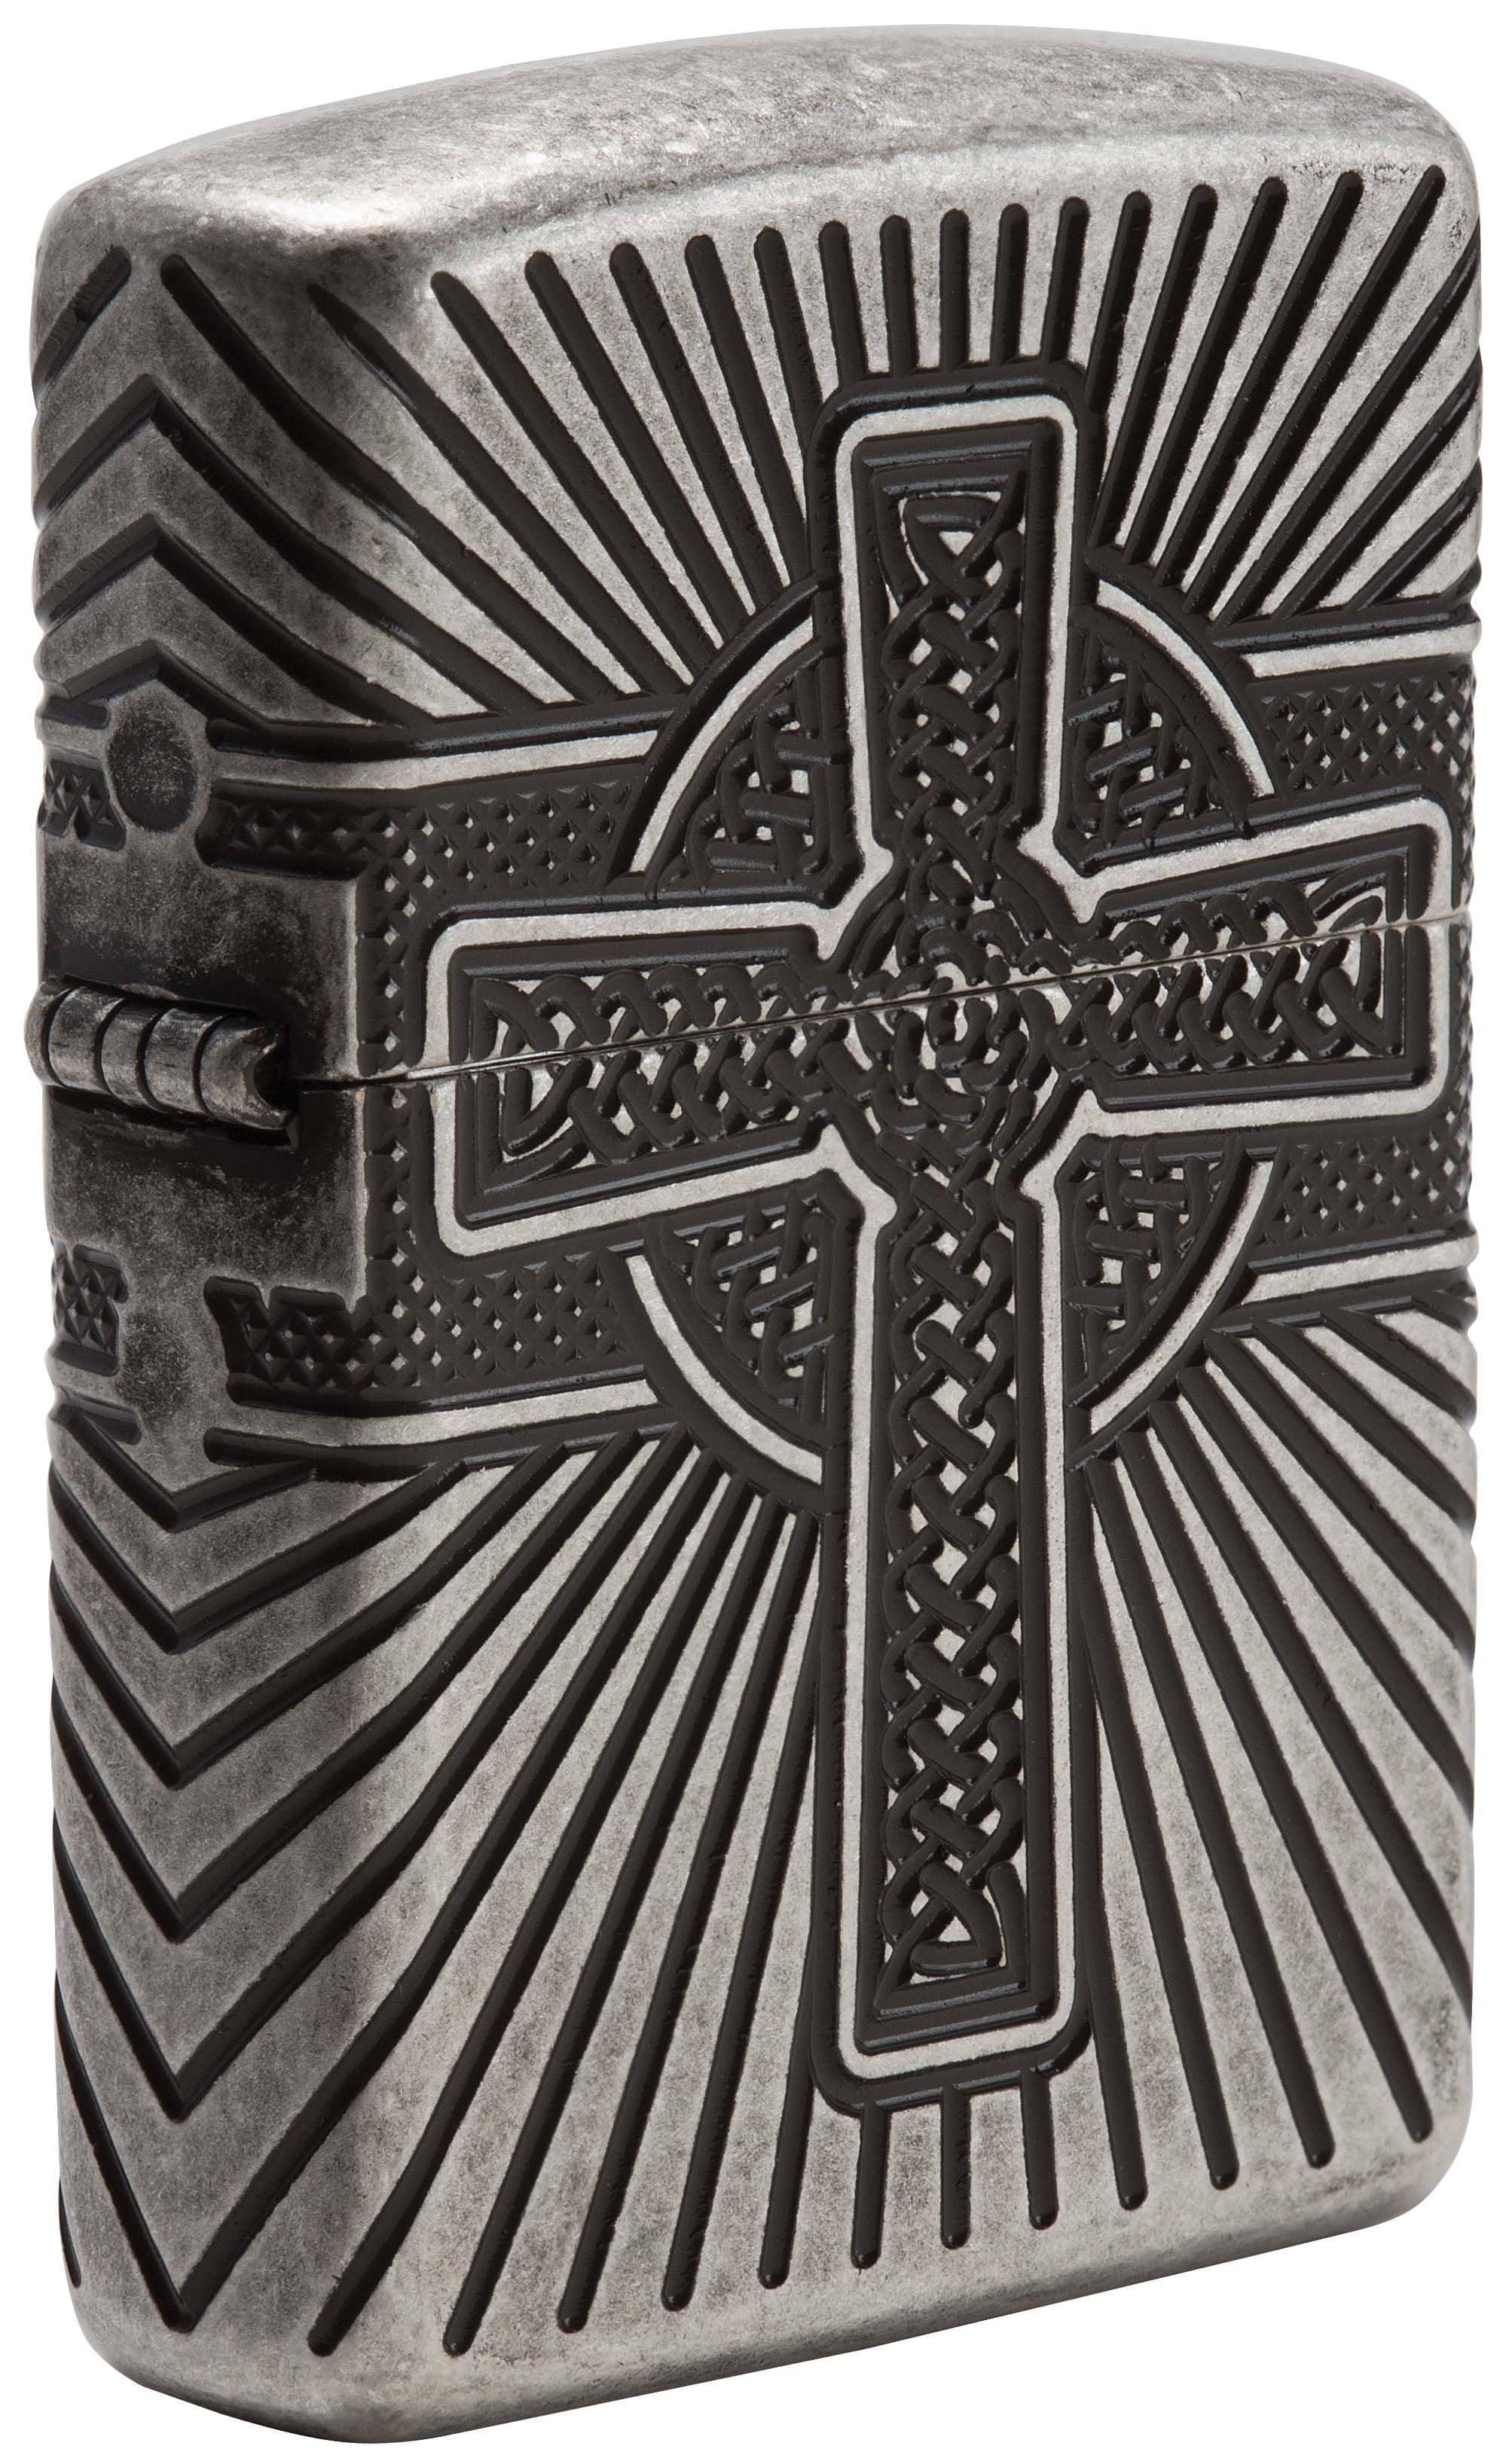 Zippo Lighter: Armor Multicut Celtic Cross and Knot - Antique Silver 29667 - Gear Exec (1975546380403)